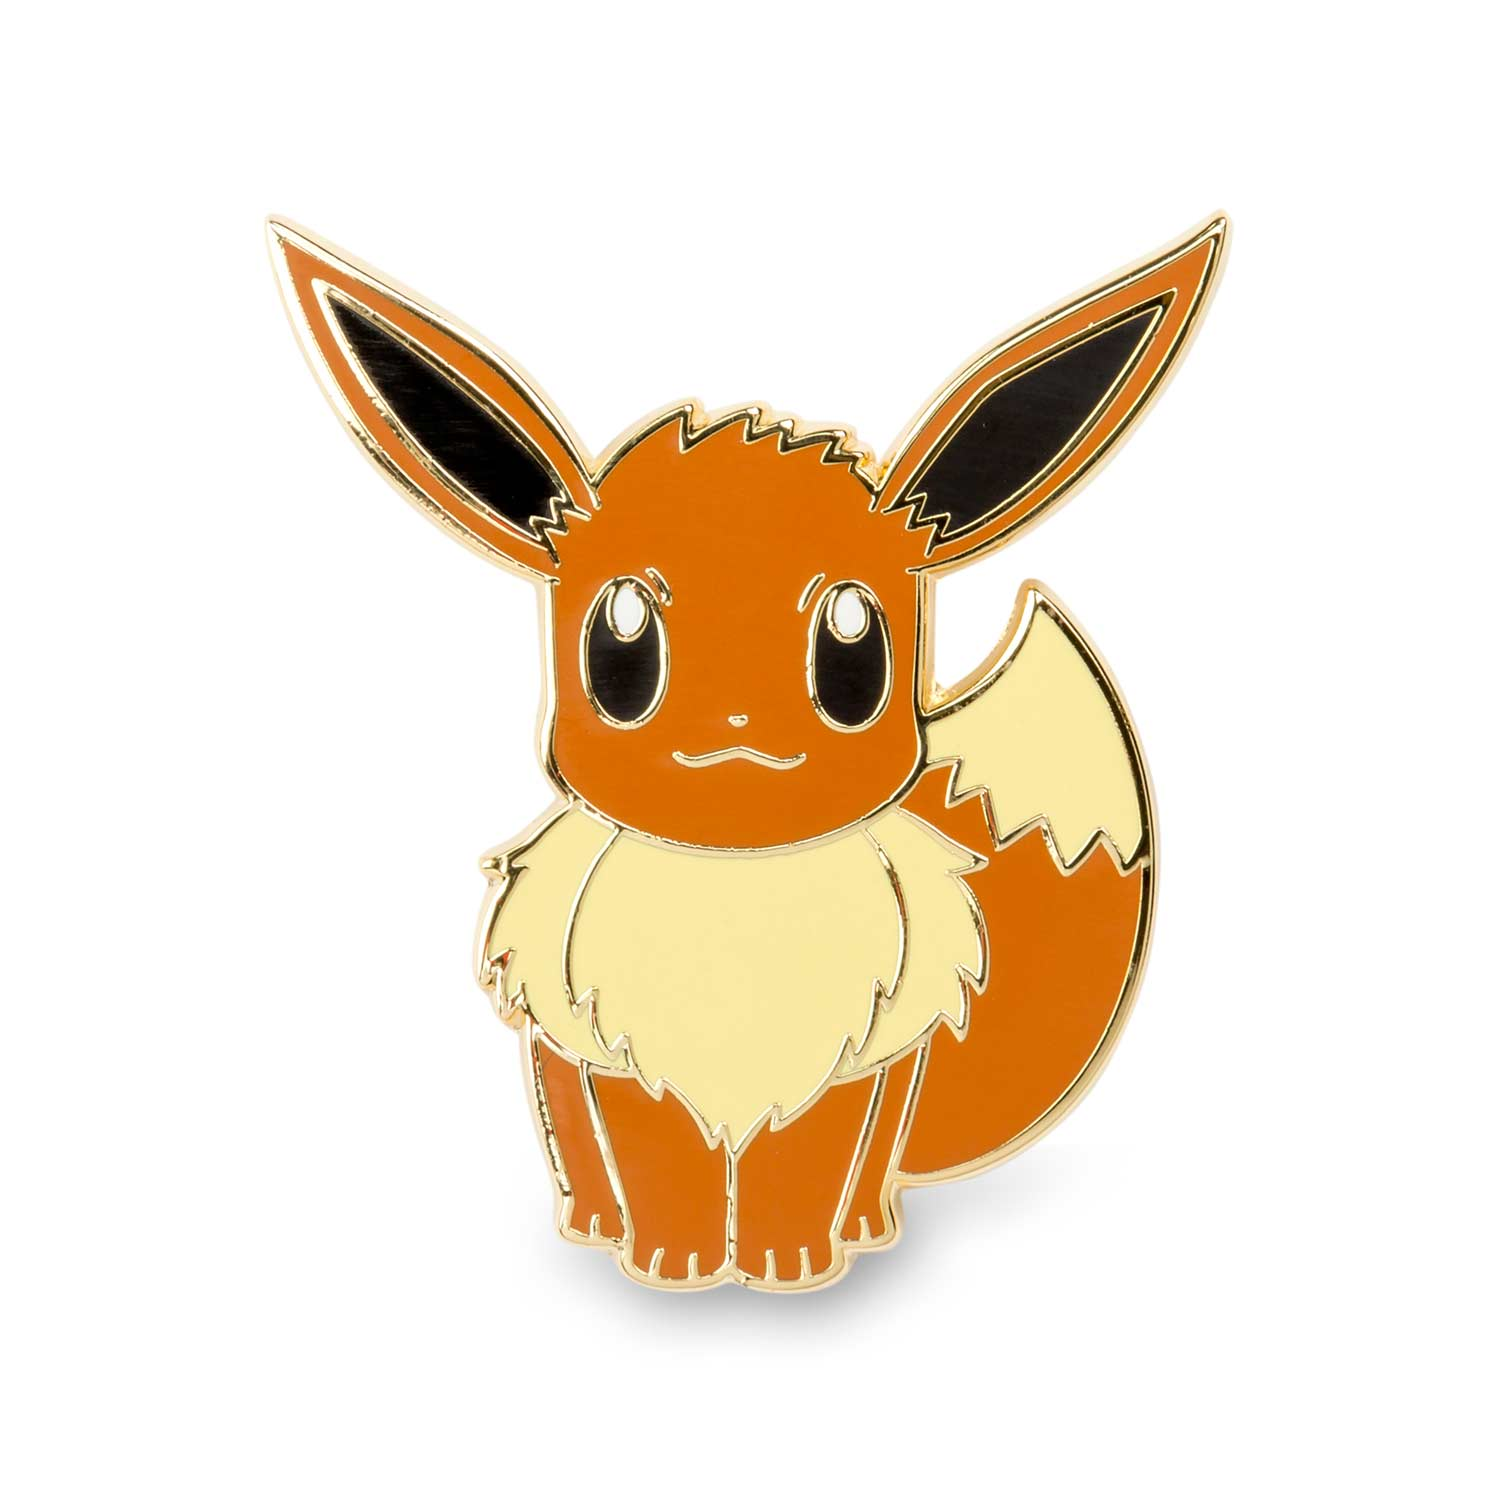 Eevee And Vaporeon Pokémon Pins Evo 2 Pack 710 01953